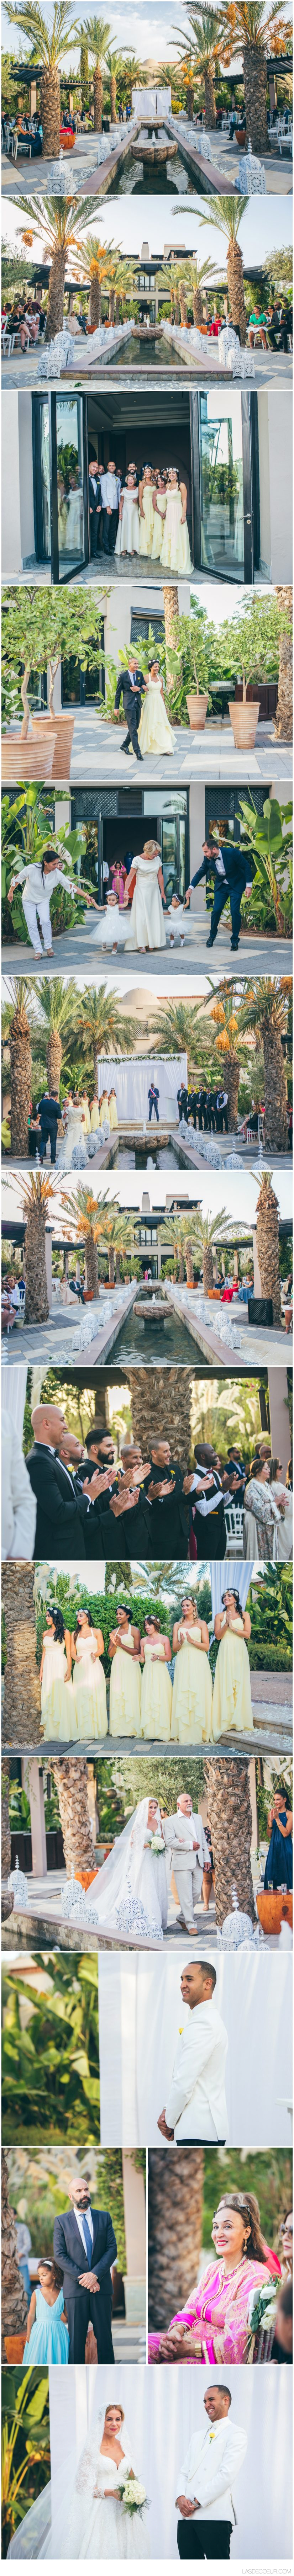 photographe mariage Four Seasons Marrakech